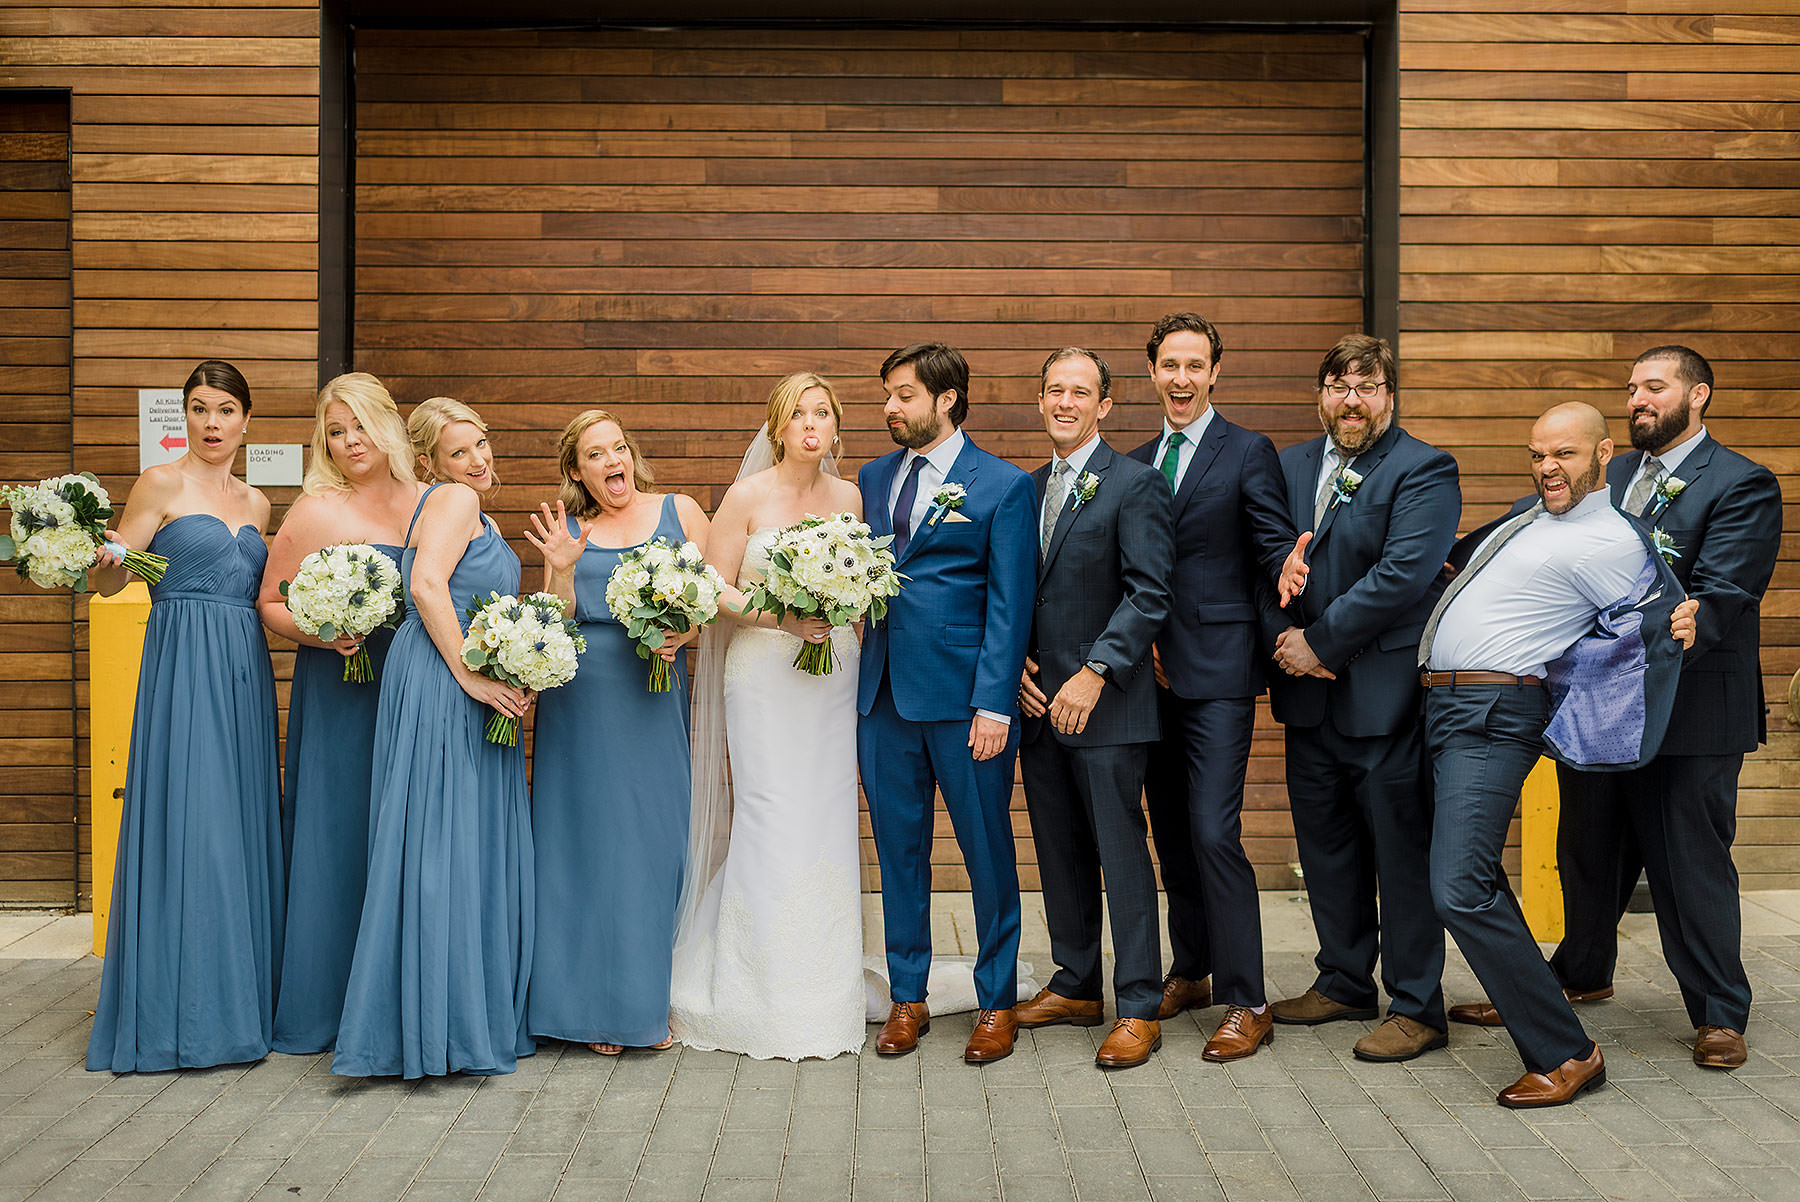 wedding party photos in front of wood wall at summer district winery wedding by Washington DC Wedding Photographer Adam Mason